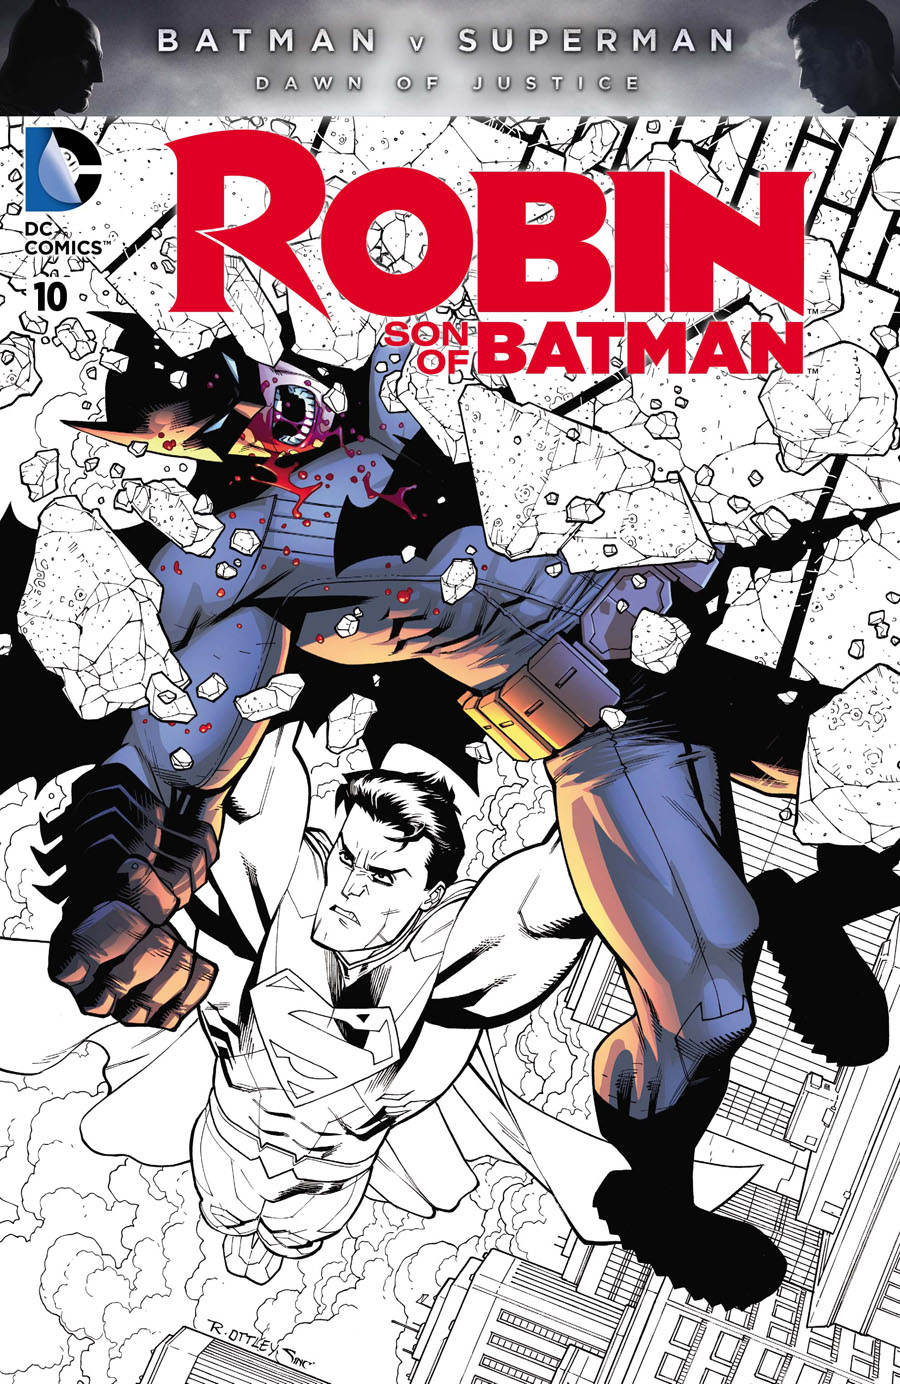 Robin Son Of Batman #10 Cover E Variant Ryan Ottley Batman v Superman Dawn Of Justice Character Cover Without Polybag